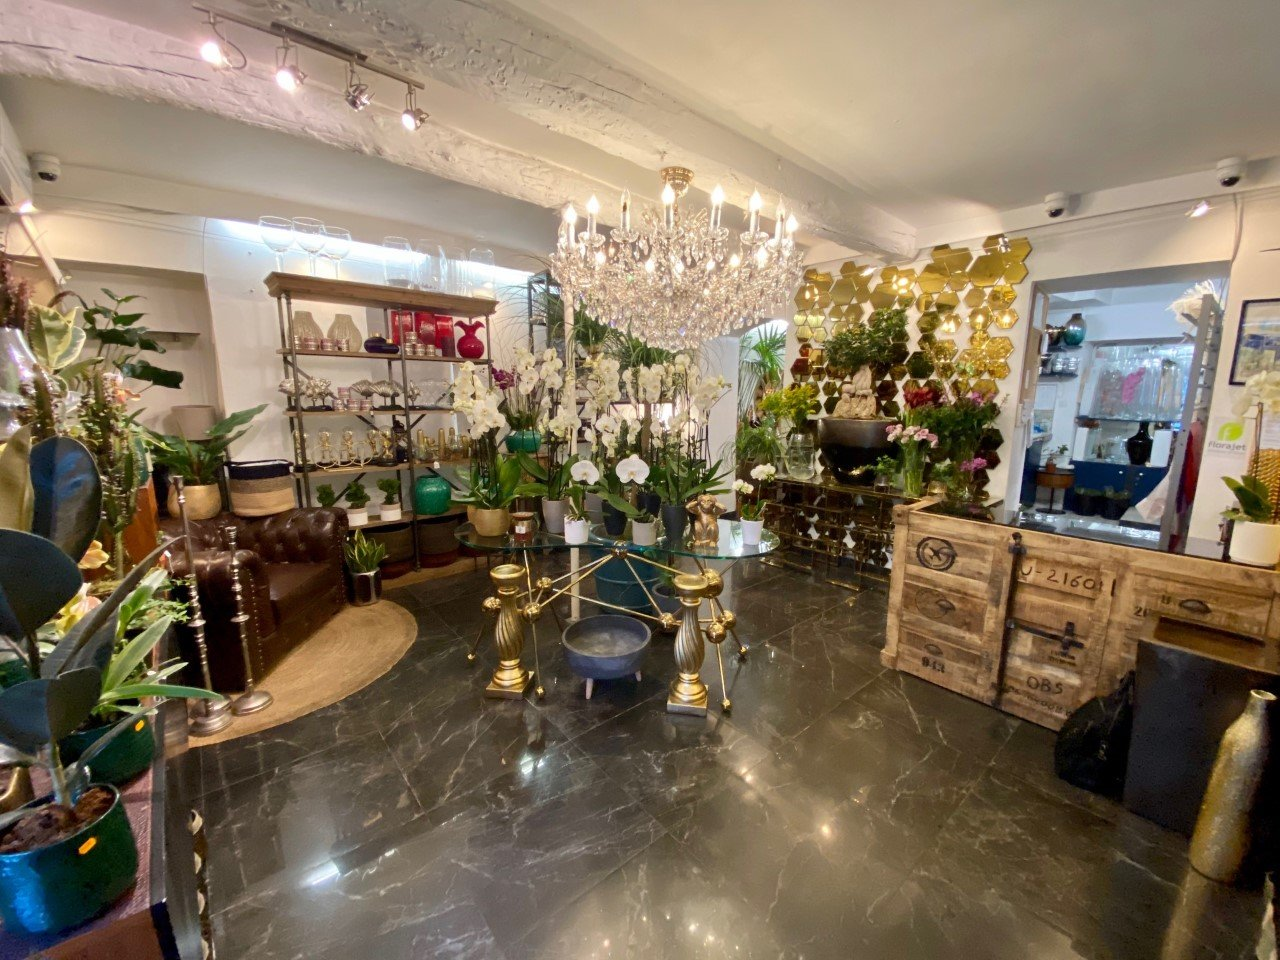 DAB - LUXUEUX MAGASIN 40 M² - NICE - CARRE D'OR